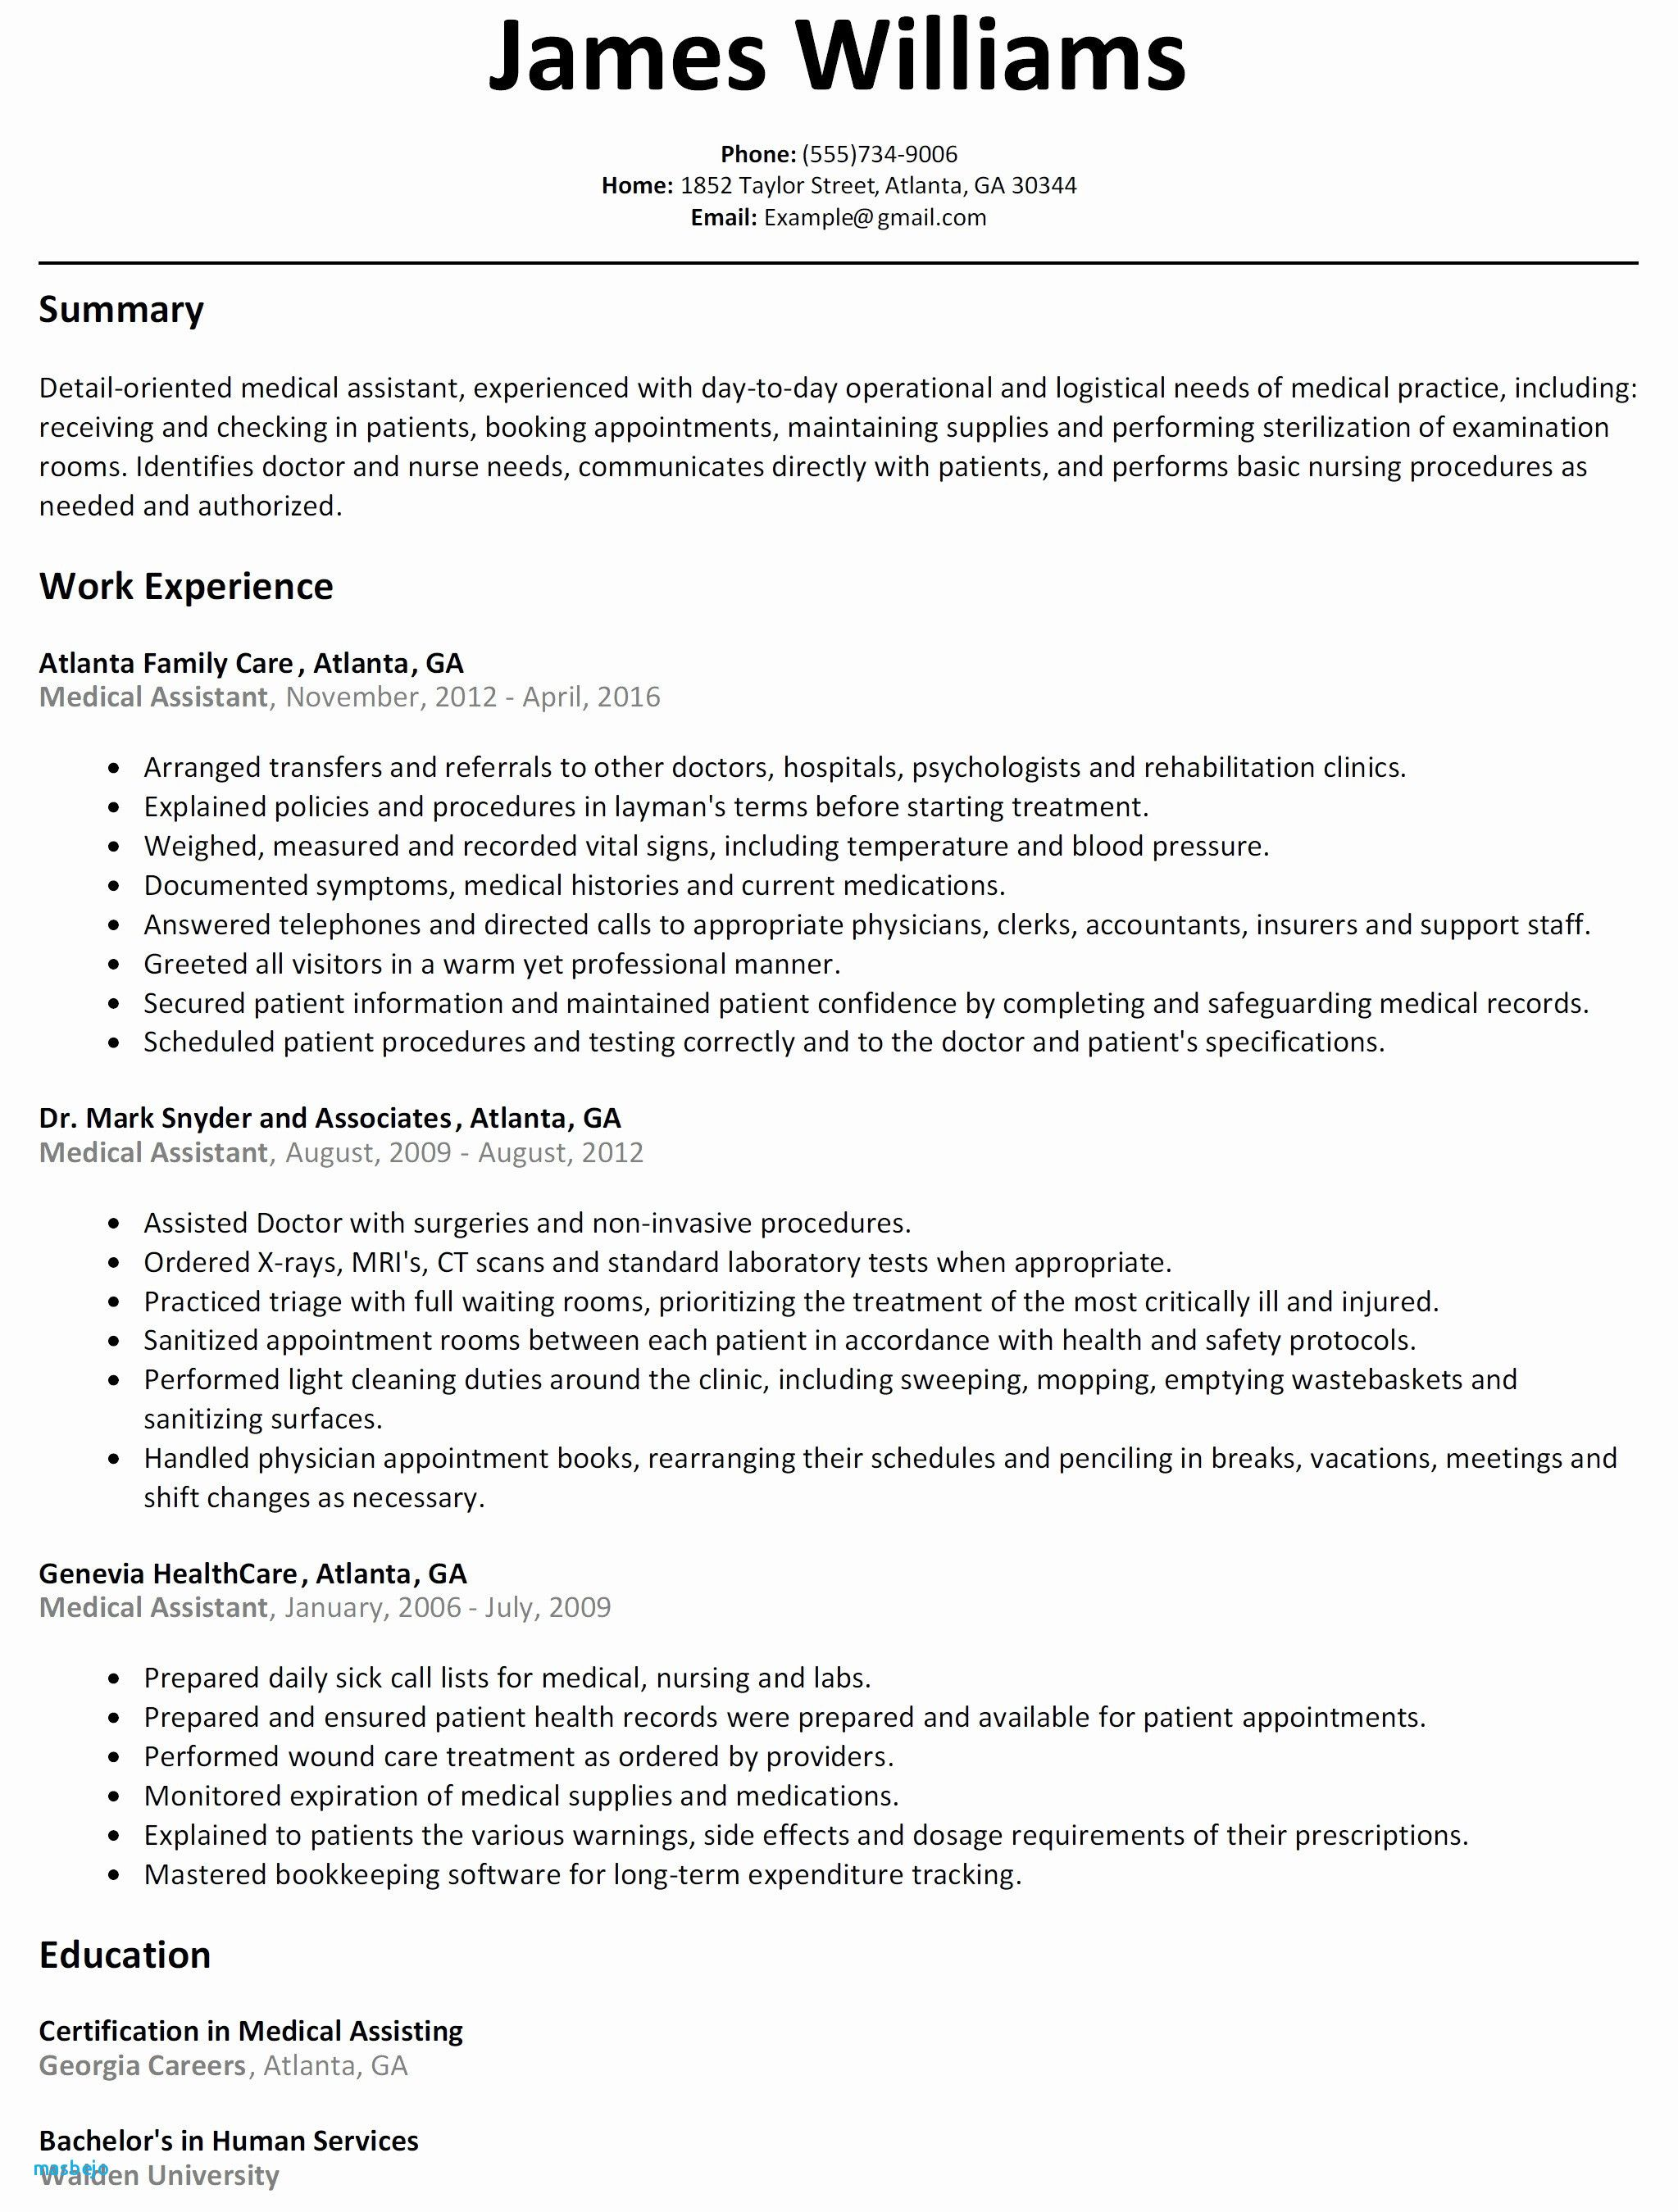 68 Beautiful Photos Of Resume Examples for Medical